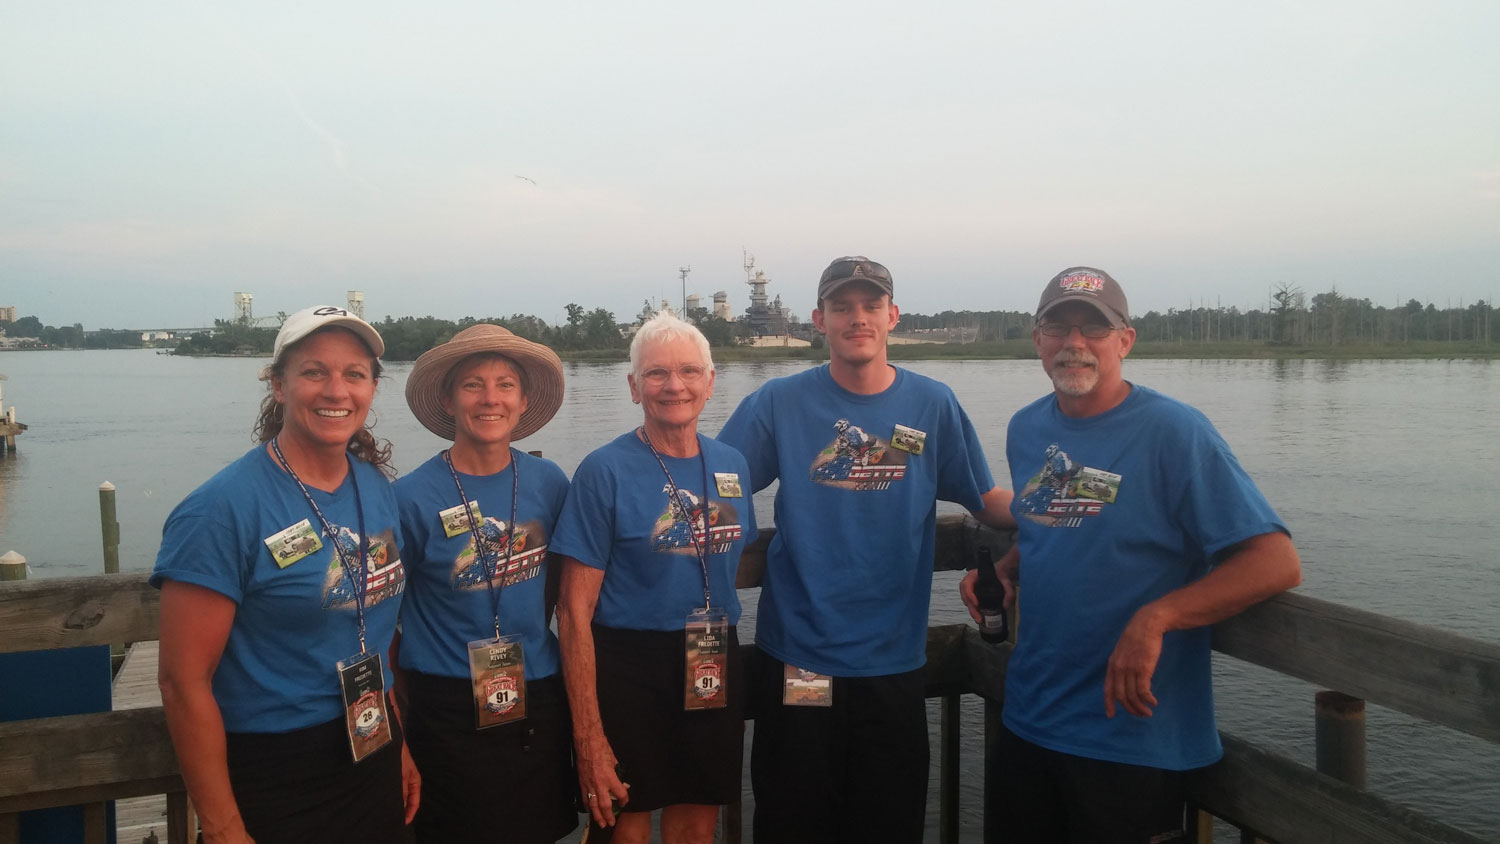 The Great Race: Grandpa is driving force behind father/son team from Illinois thumbnail